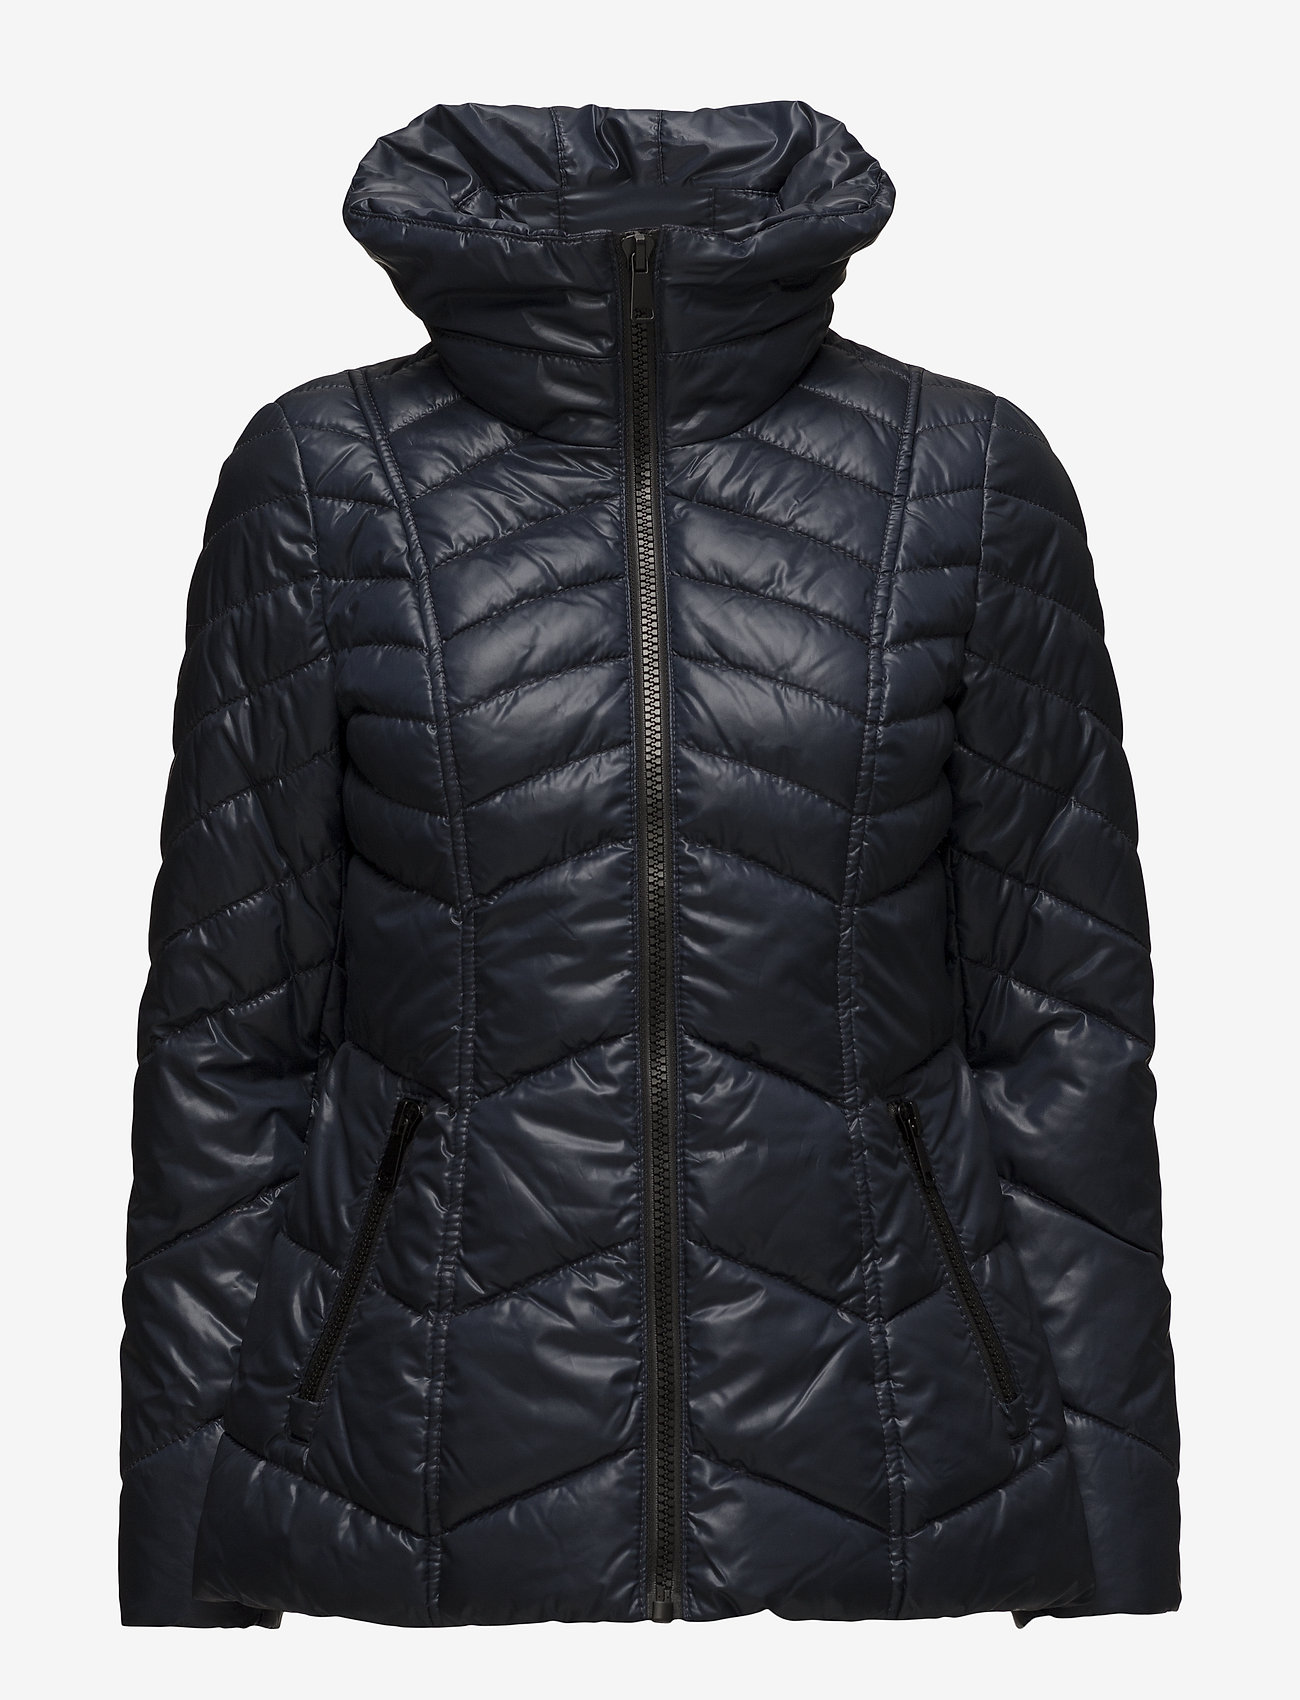 Taifun Outdoor Jacket No Wo - Jackets & Coats